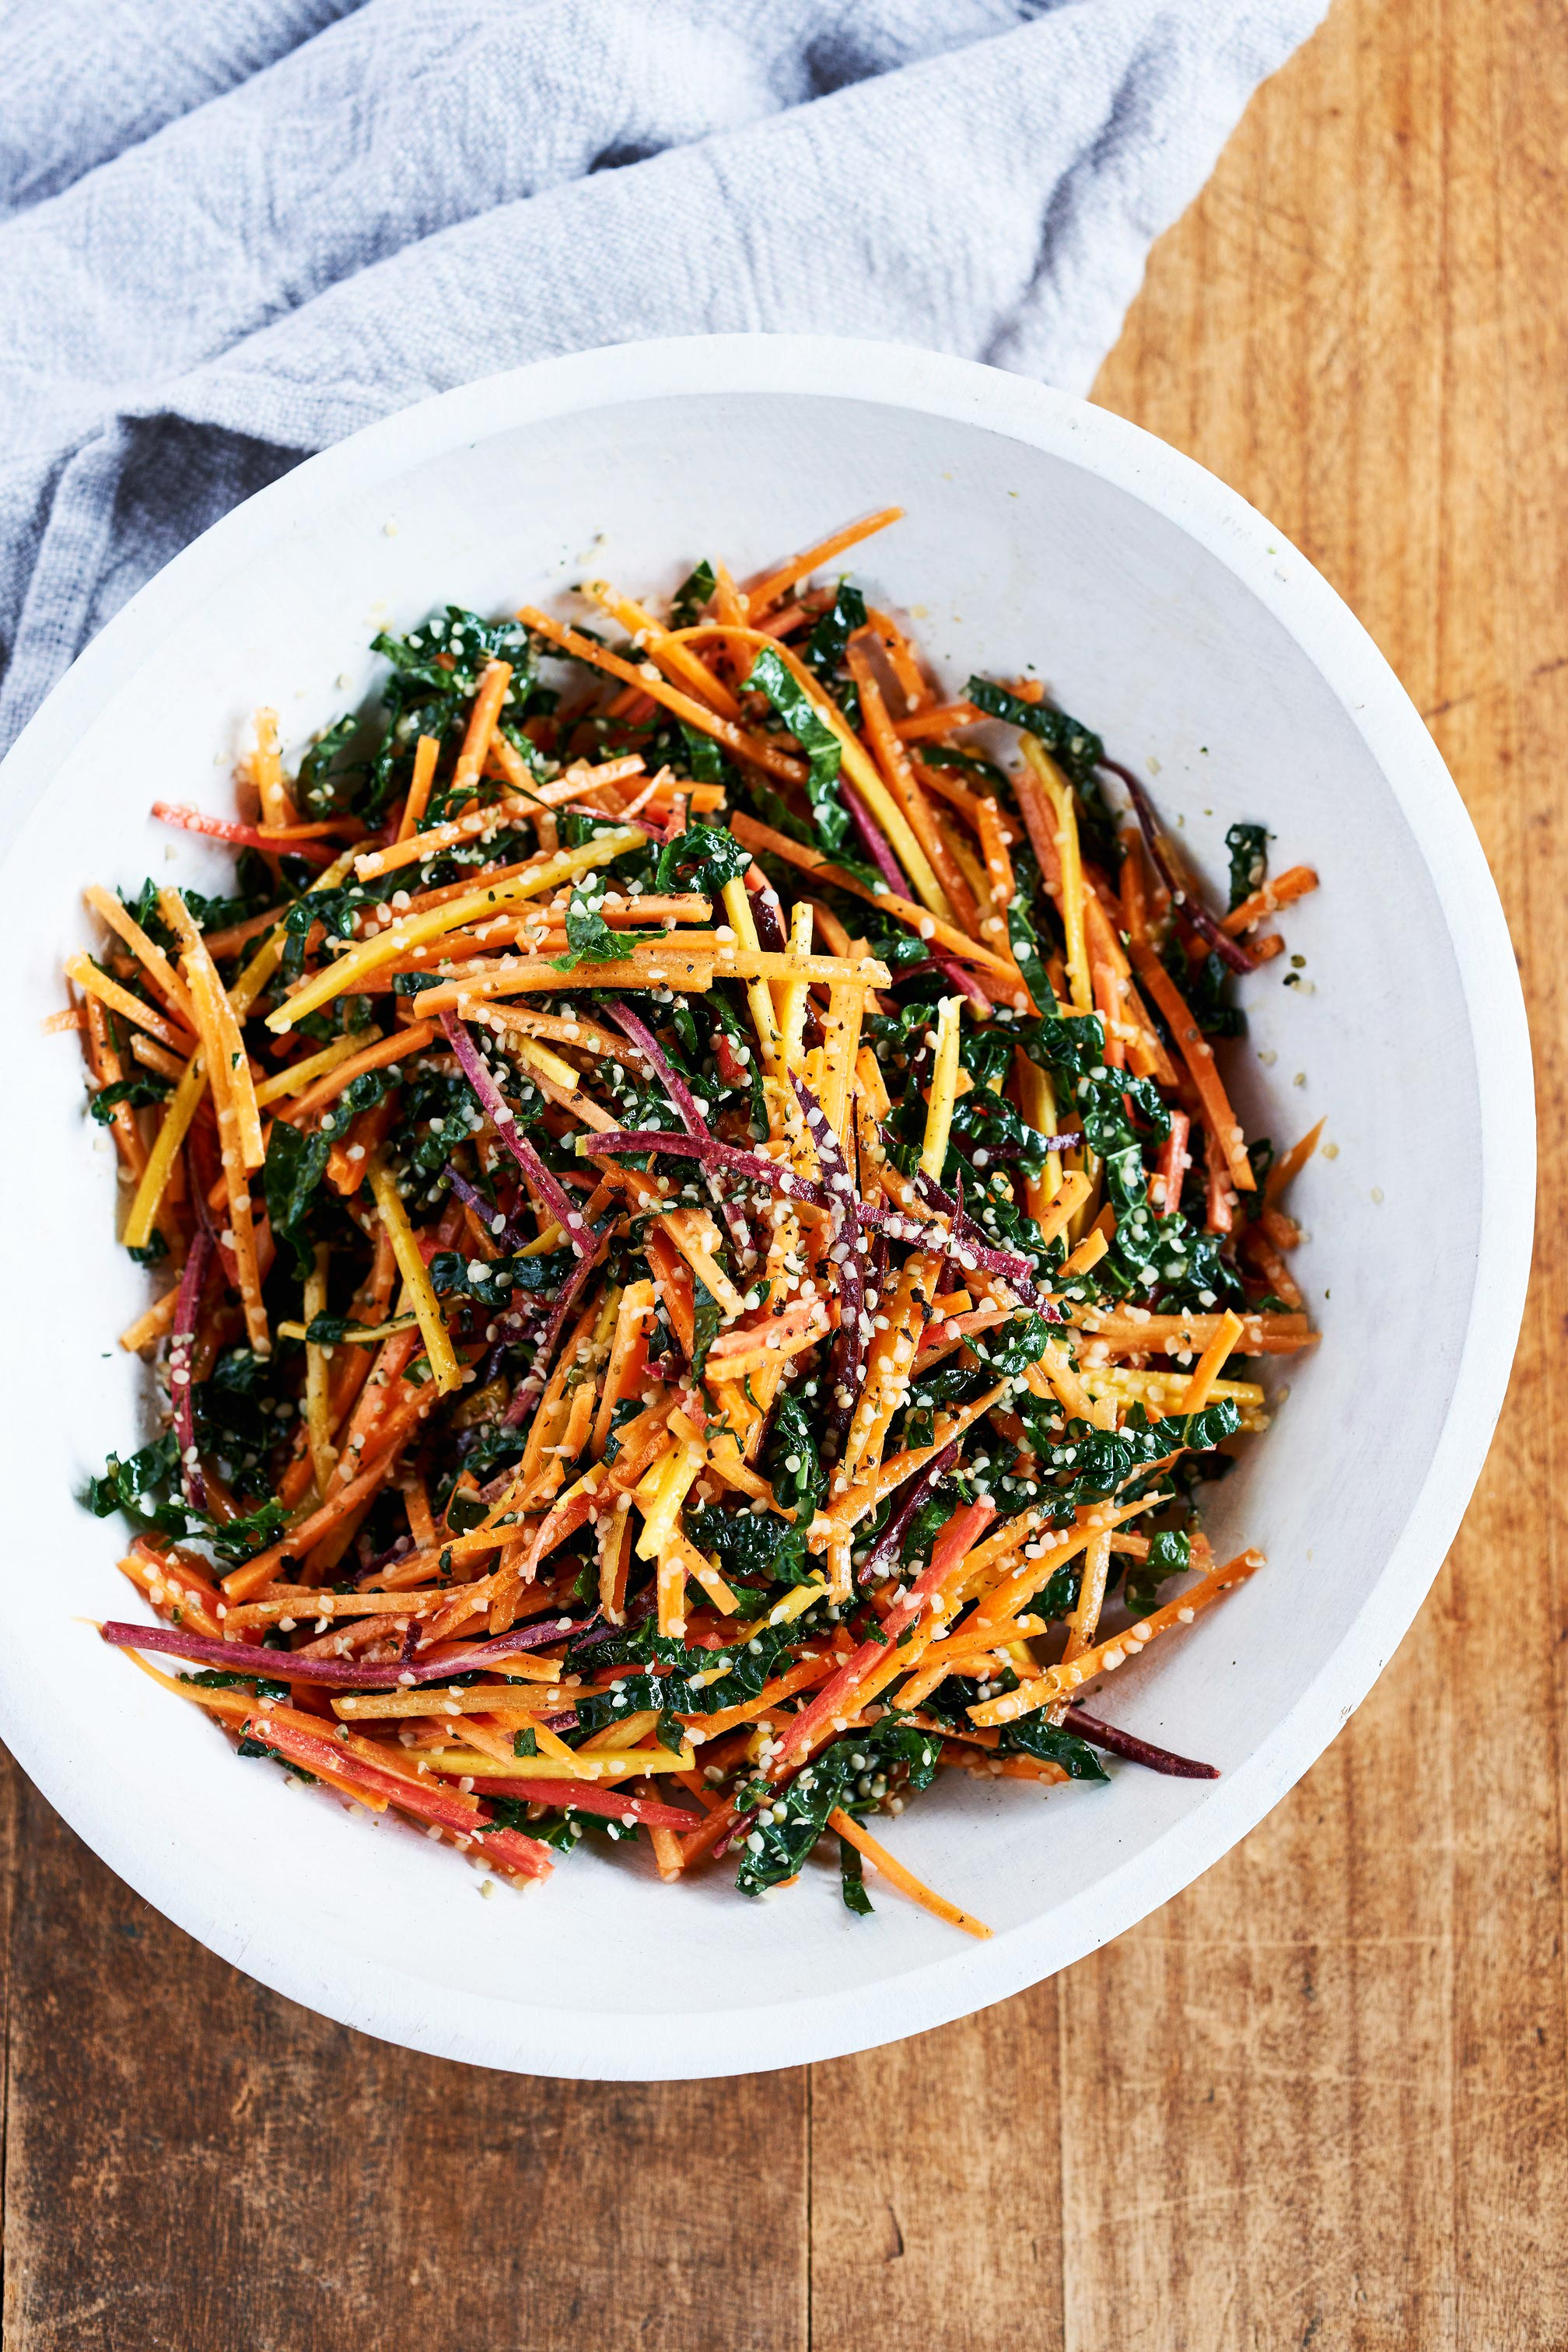 julienned carrot and kale salad